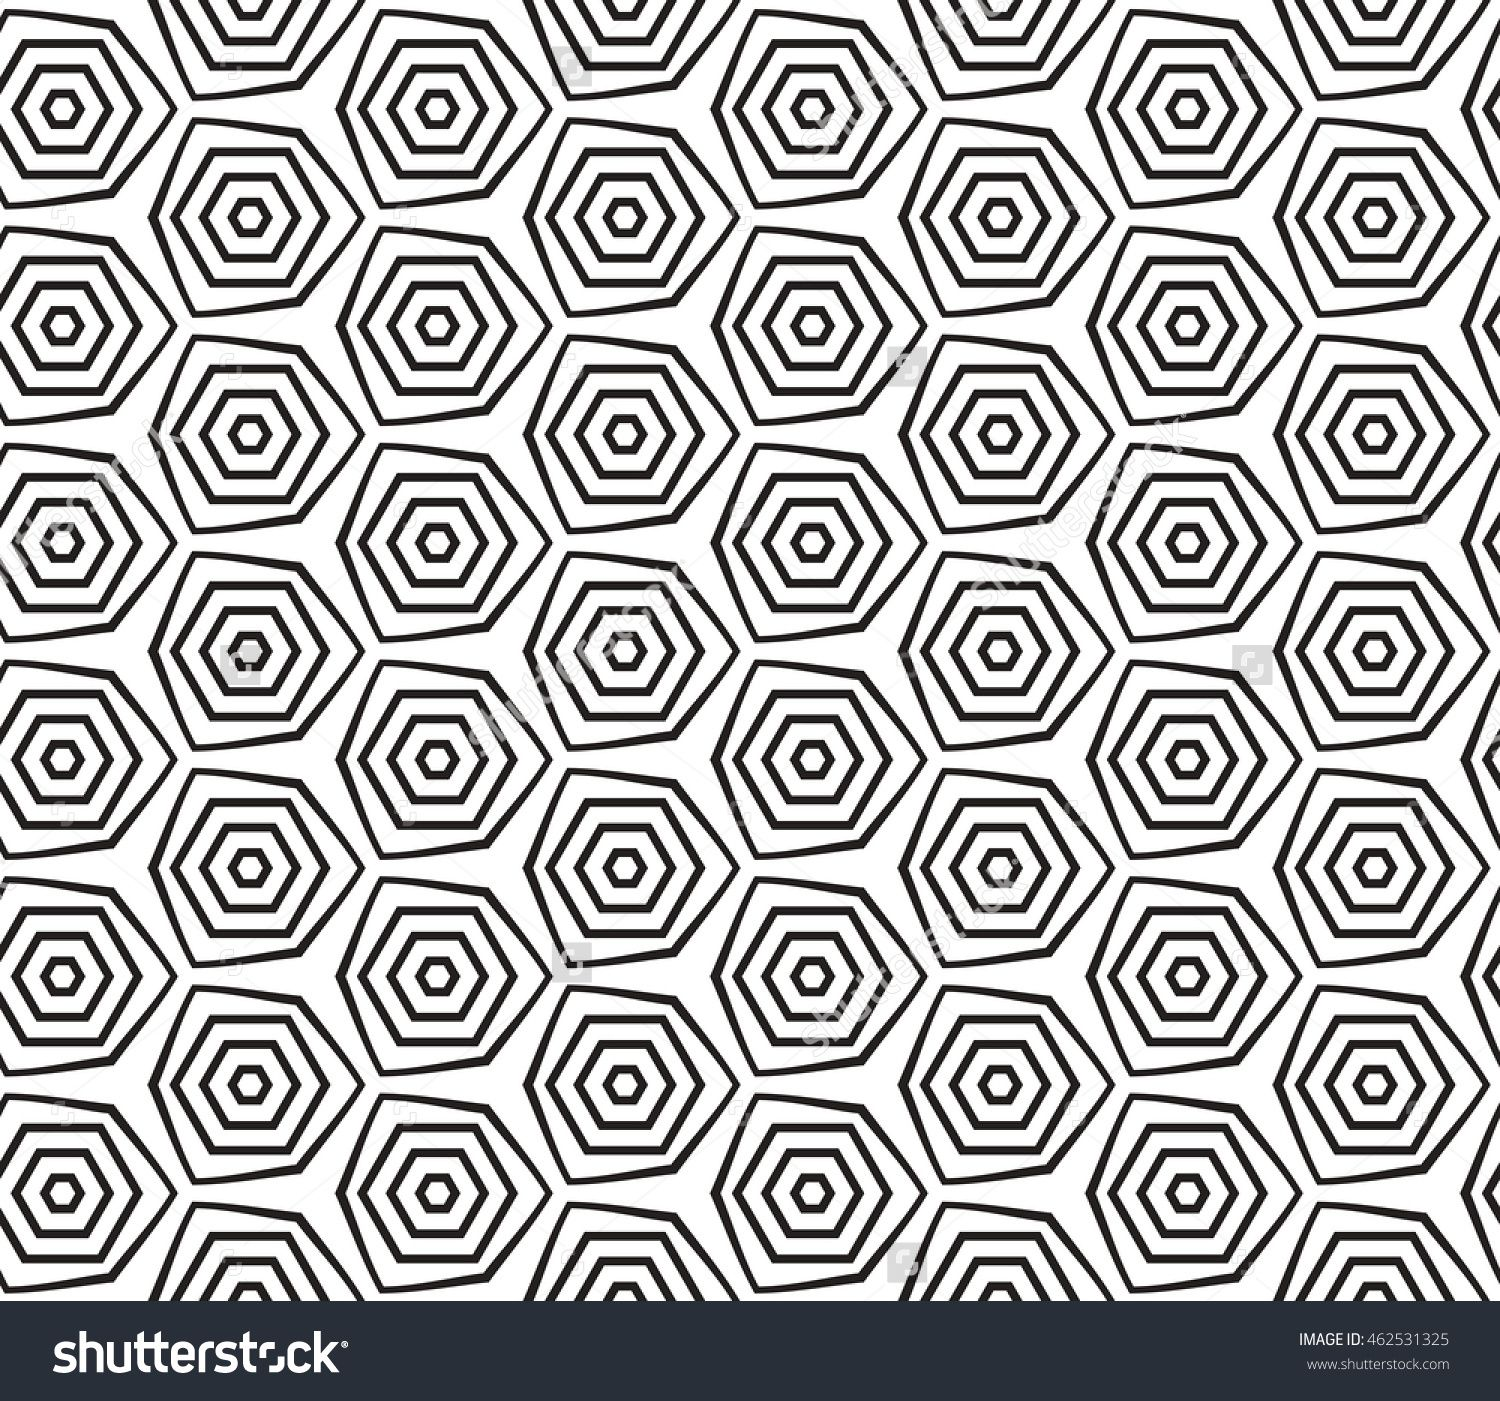 Seamless vector illustration with the image of a polygonal pattern ...